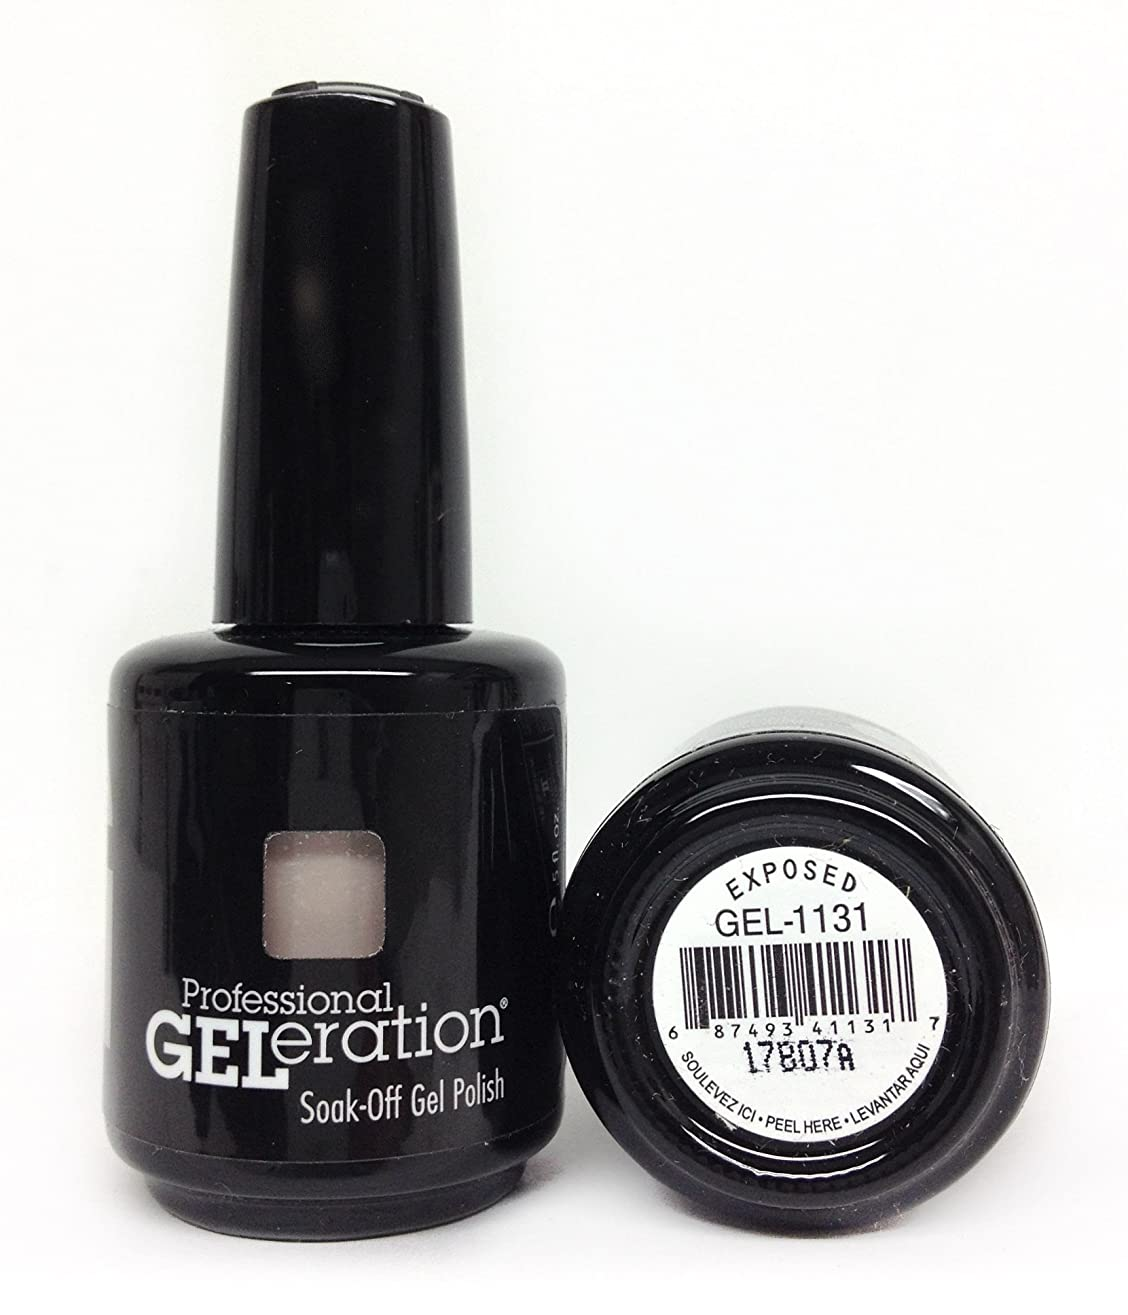 Jessica GELeration Gel Polish - 2017 Silhouette Collection - Exposed - 15ml / 0.5oz